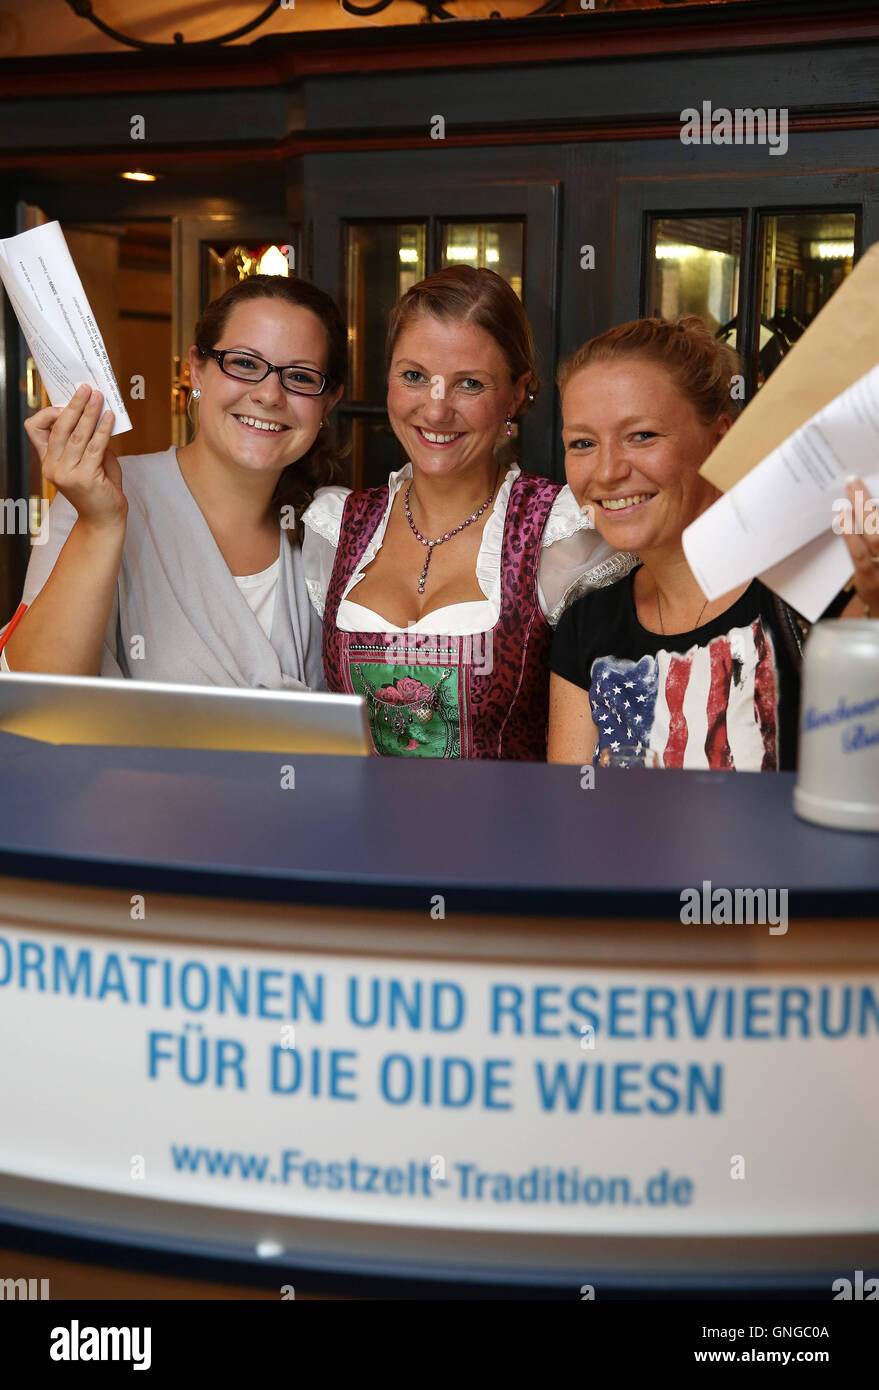 Reservation desk for the Oide Wiesn in the Munich Ratskeller, 2014 - Stock Image